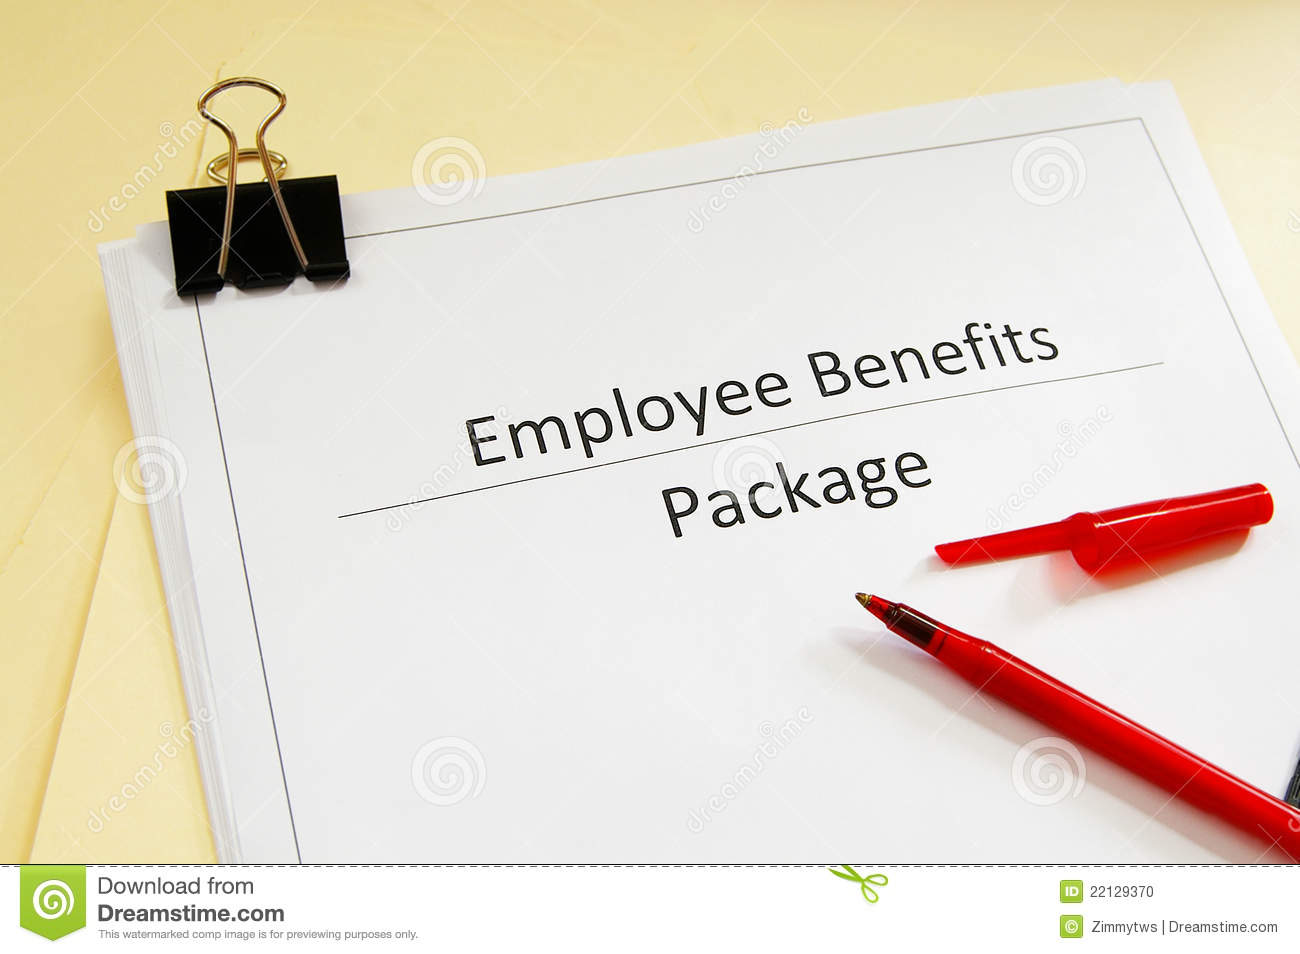 benefit packages Read this article for more information on the importance of employee benefits and what a benefits package should consist of.